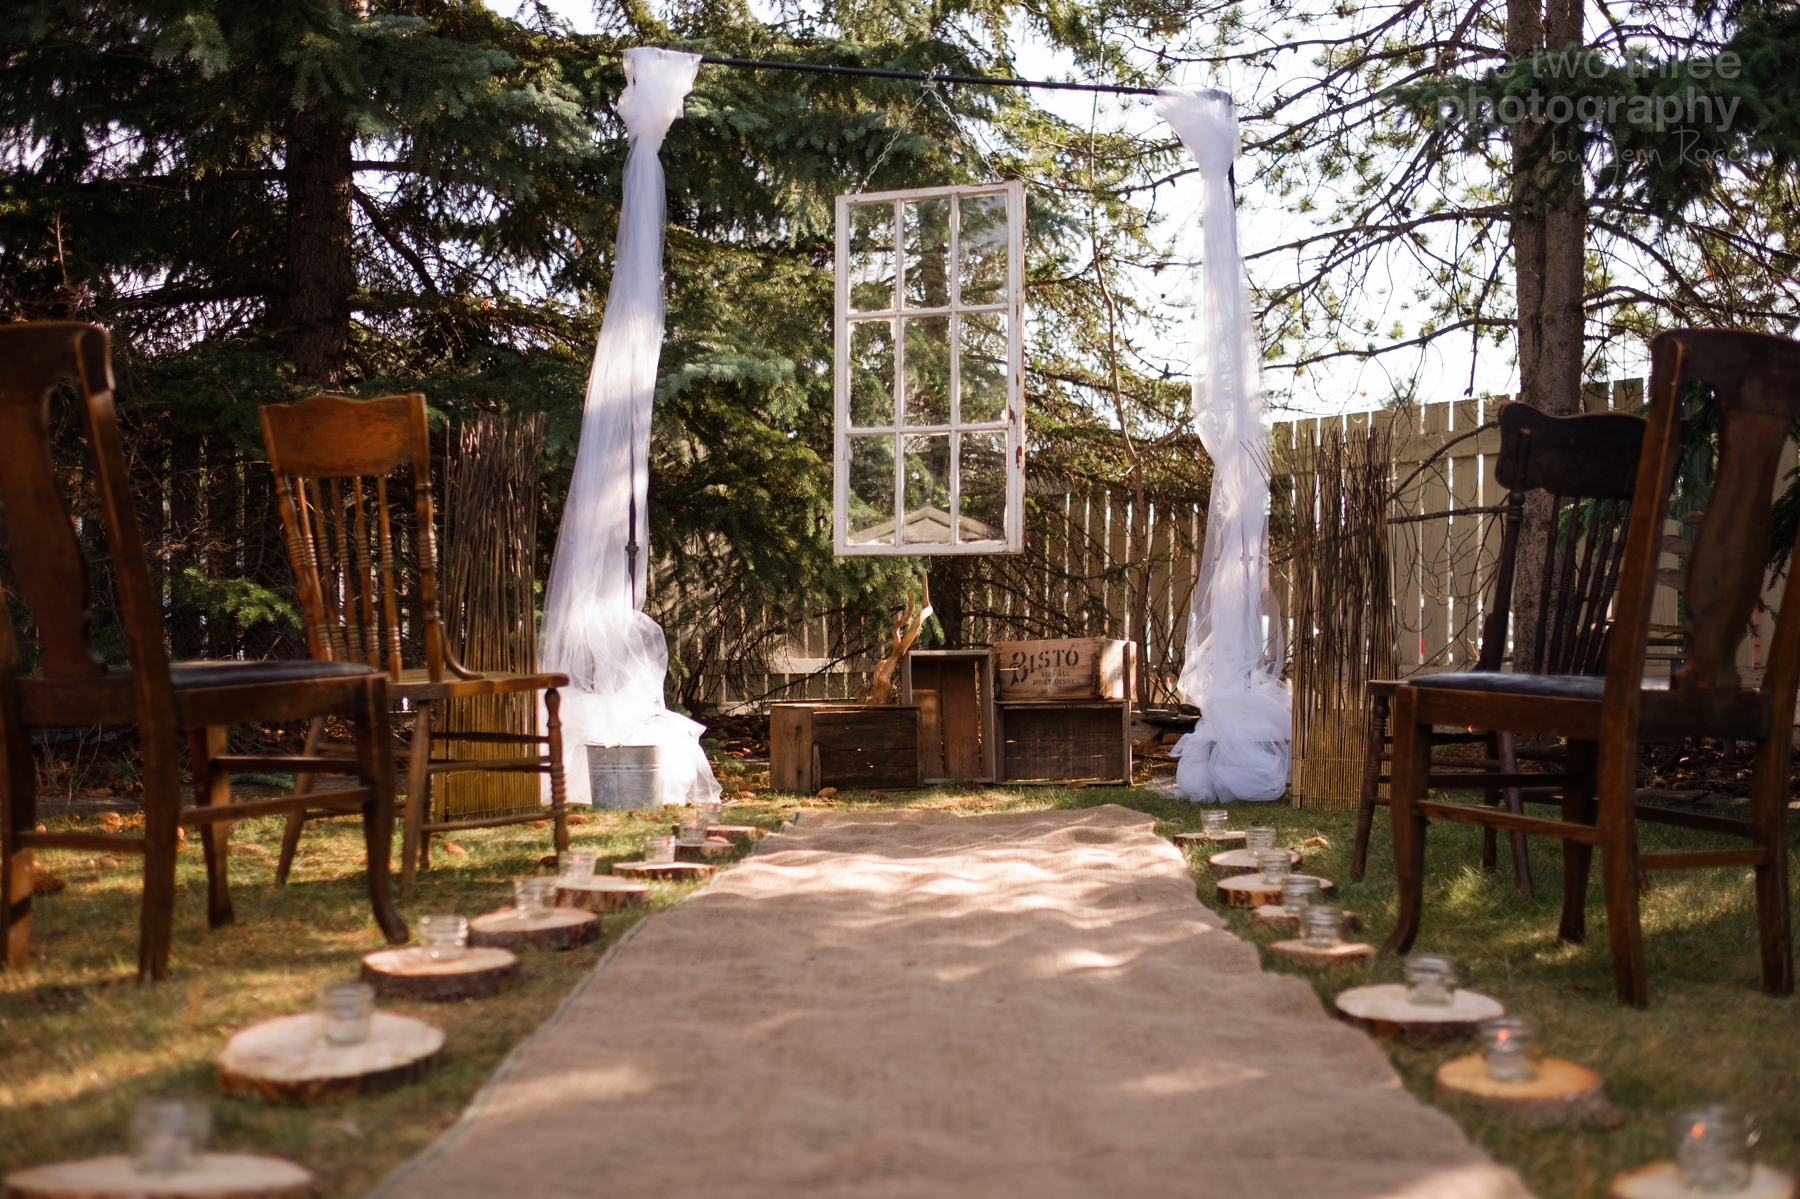 Rustic wedding ideas including vintage windows wood glass jars antique chairs tule and wooden crates